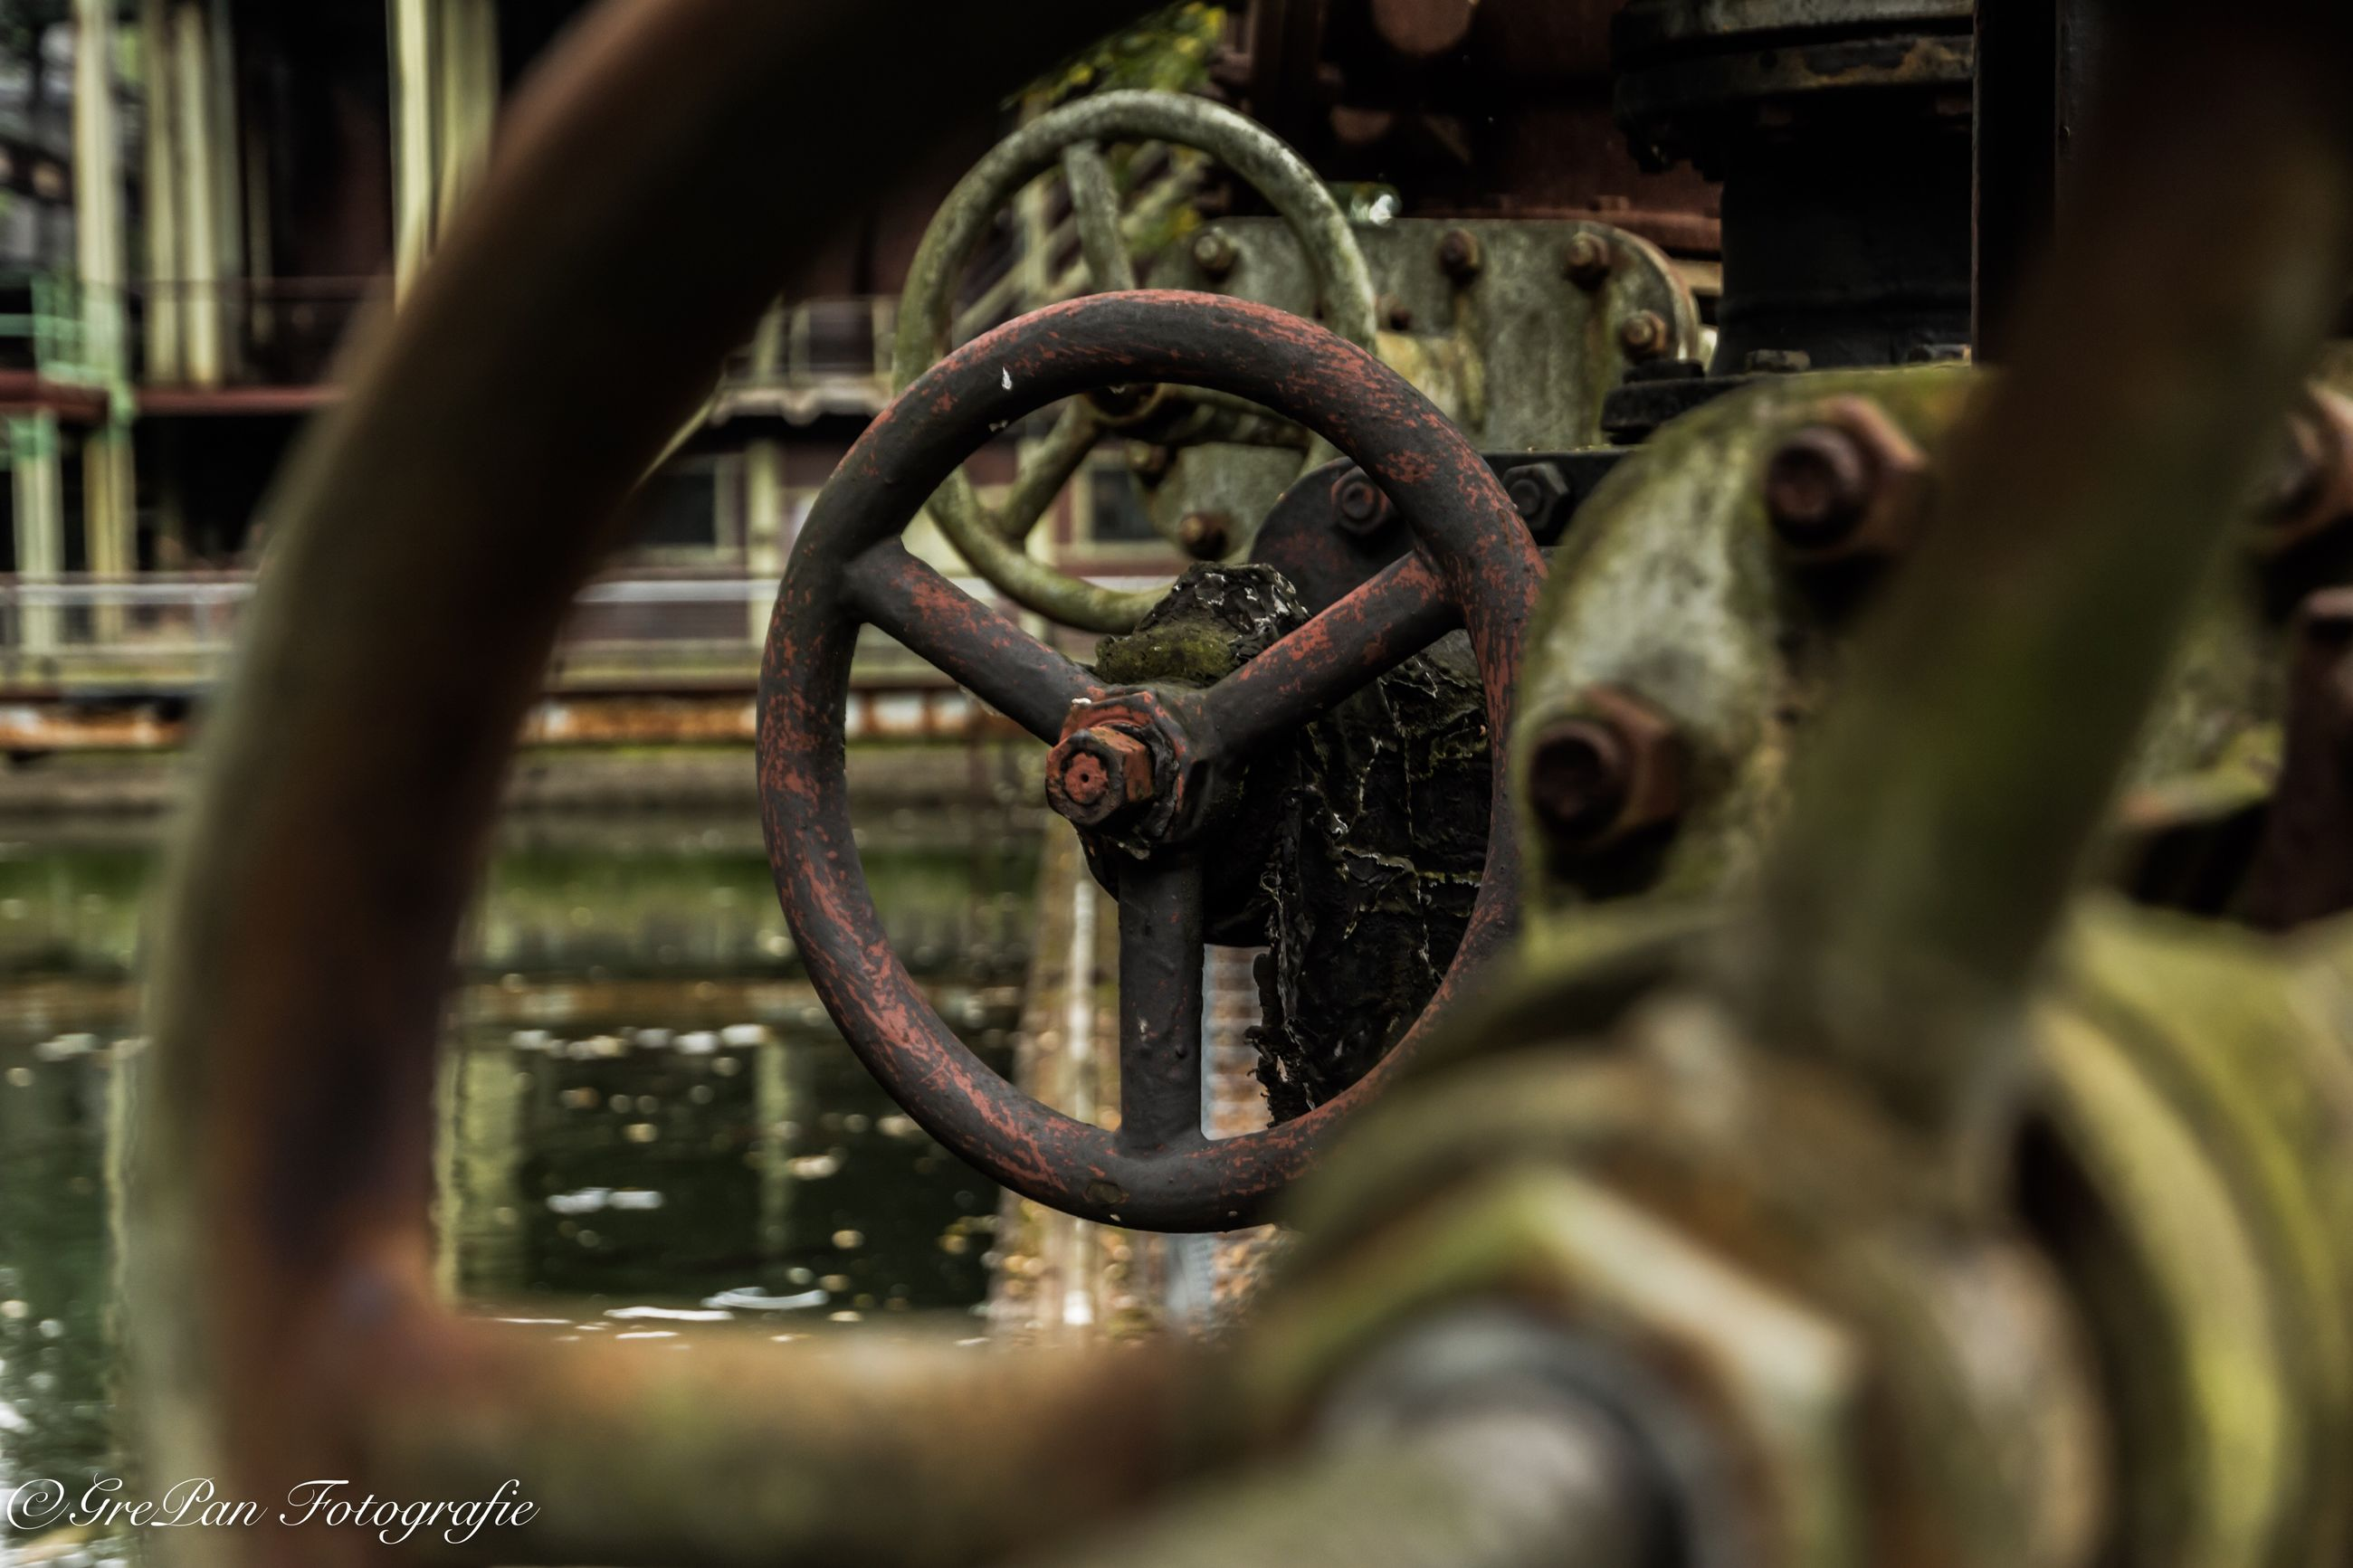 metal, connection, close-up, chain, rusty, metallic, old, strength, selective focus, safety, deterioration, protection, gate, industry, security, machine part, link, weathered, iron - metal, gear, day, valve, outdoors, wrought iron, obsolete, no people